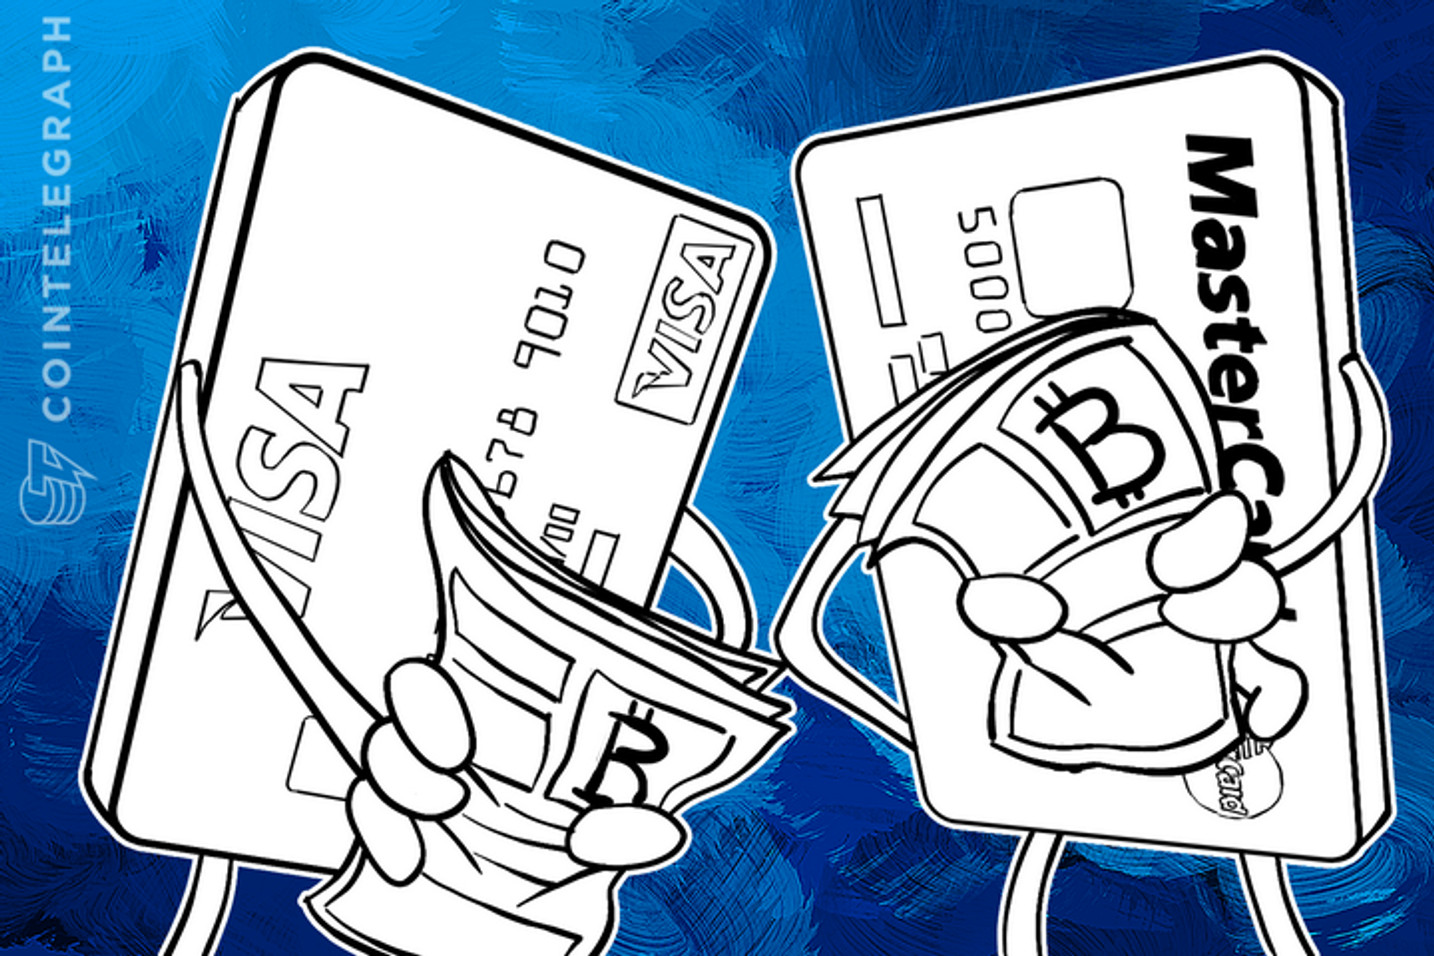 Visa & Mastercard Execs Have Plenty to Say About Bitcoin